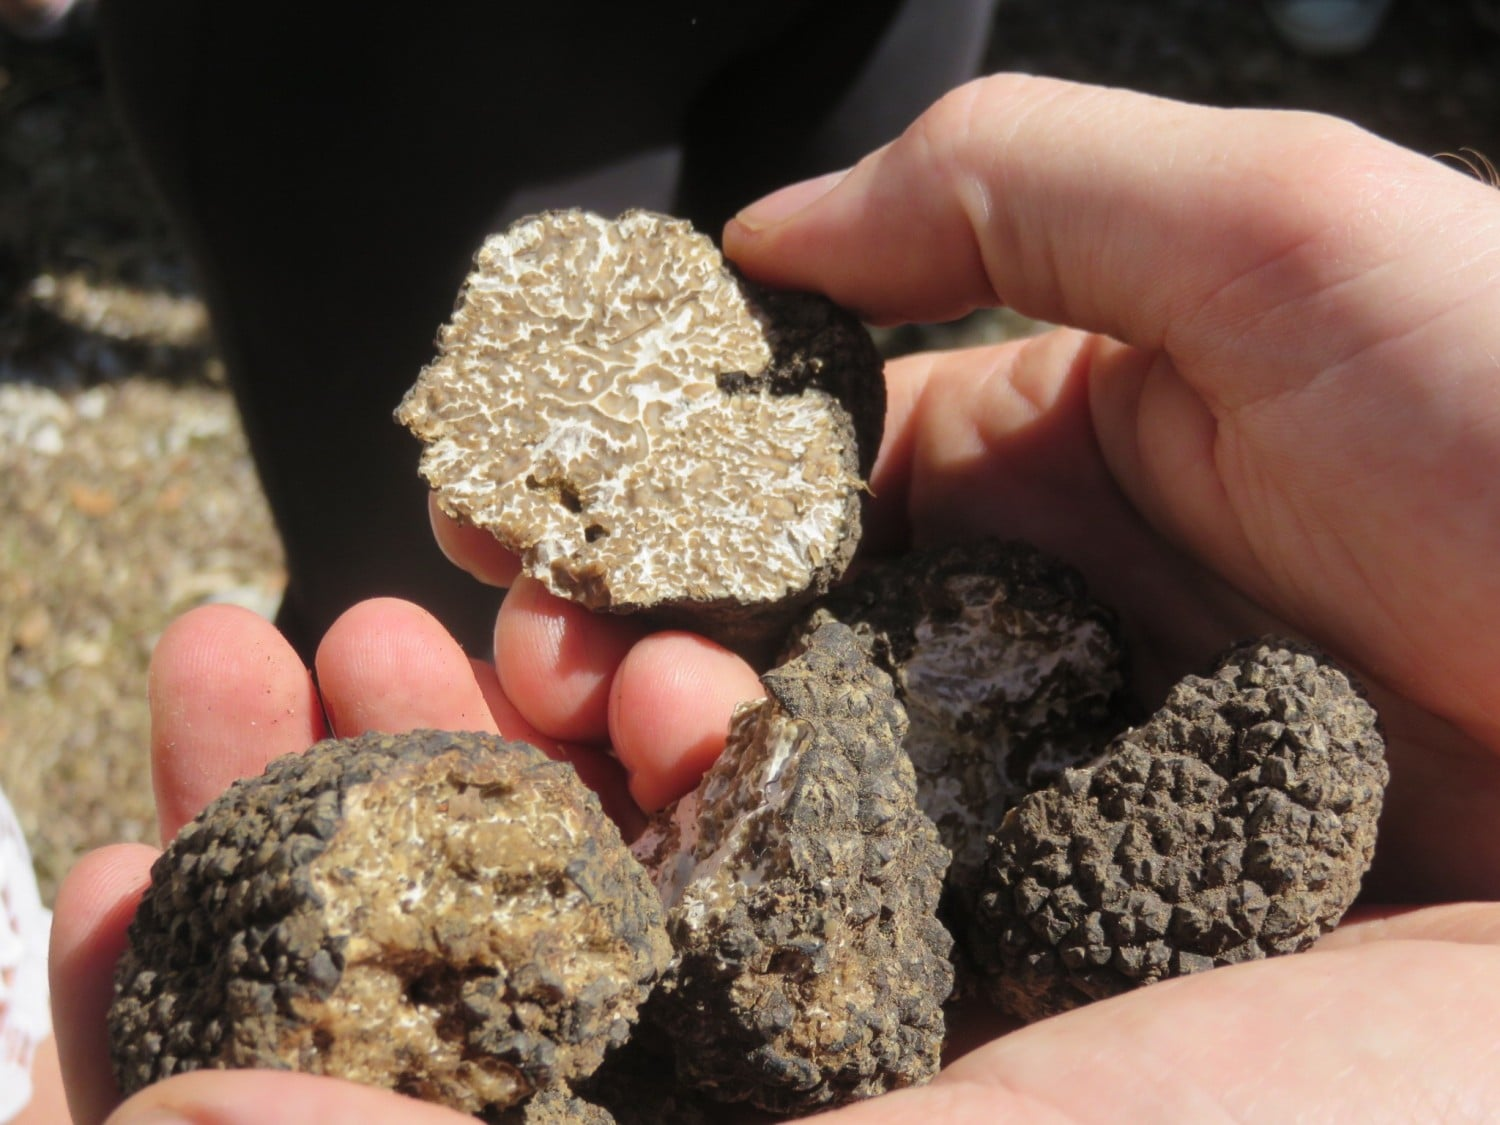 Truffle hunting in Umbria - one of the best things to do in Umbria